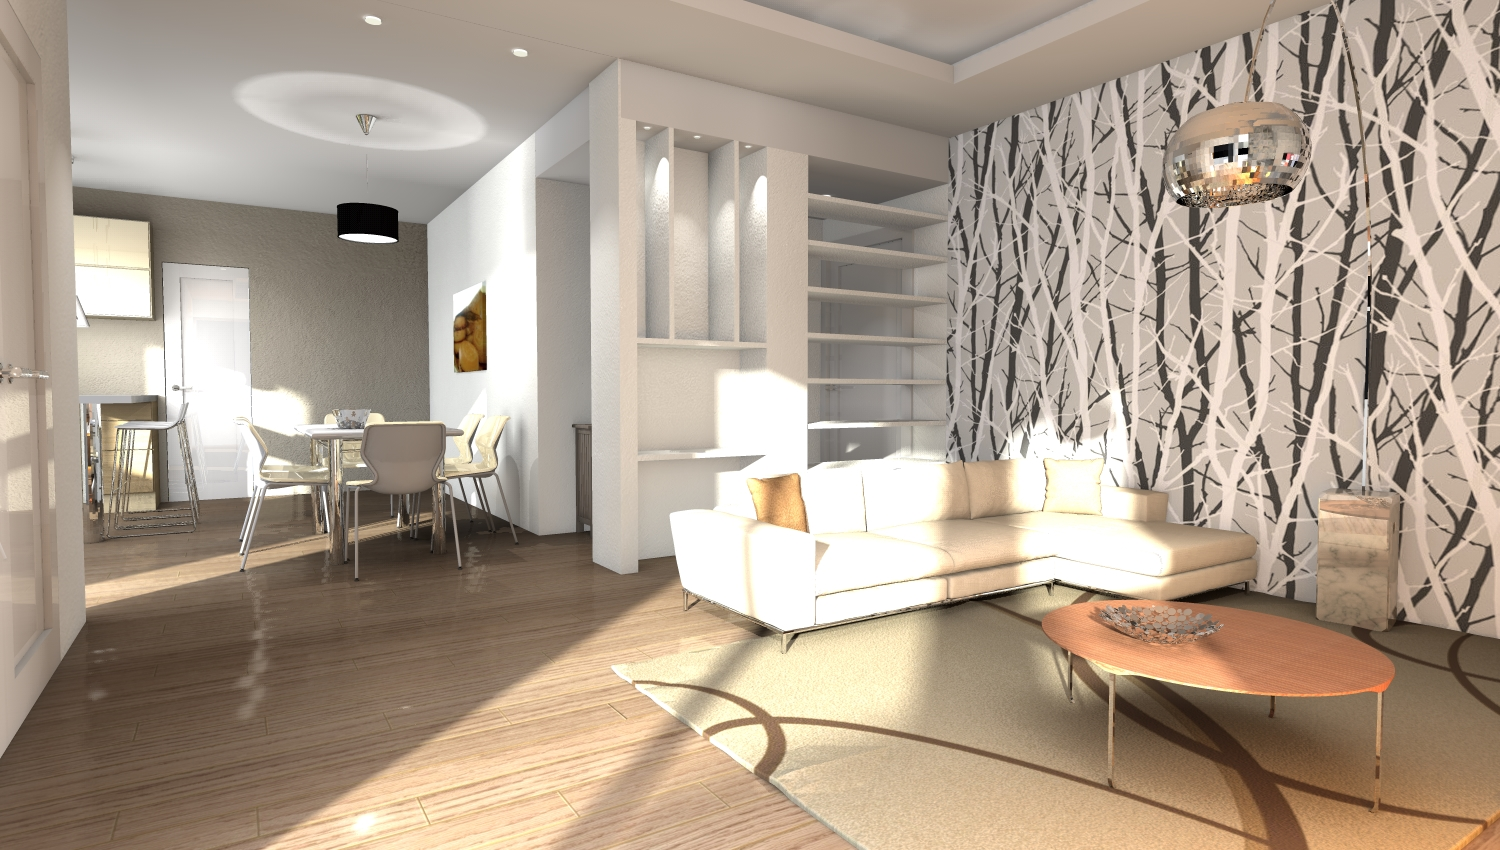 Progetto interni casa ht65 regardsdefemmes for Design interni casa moderna